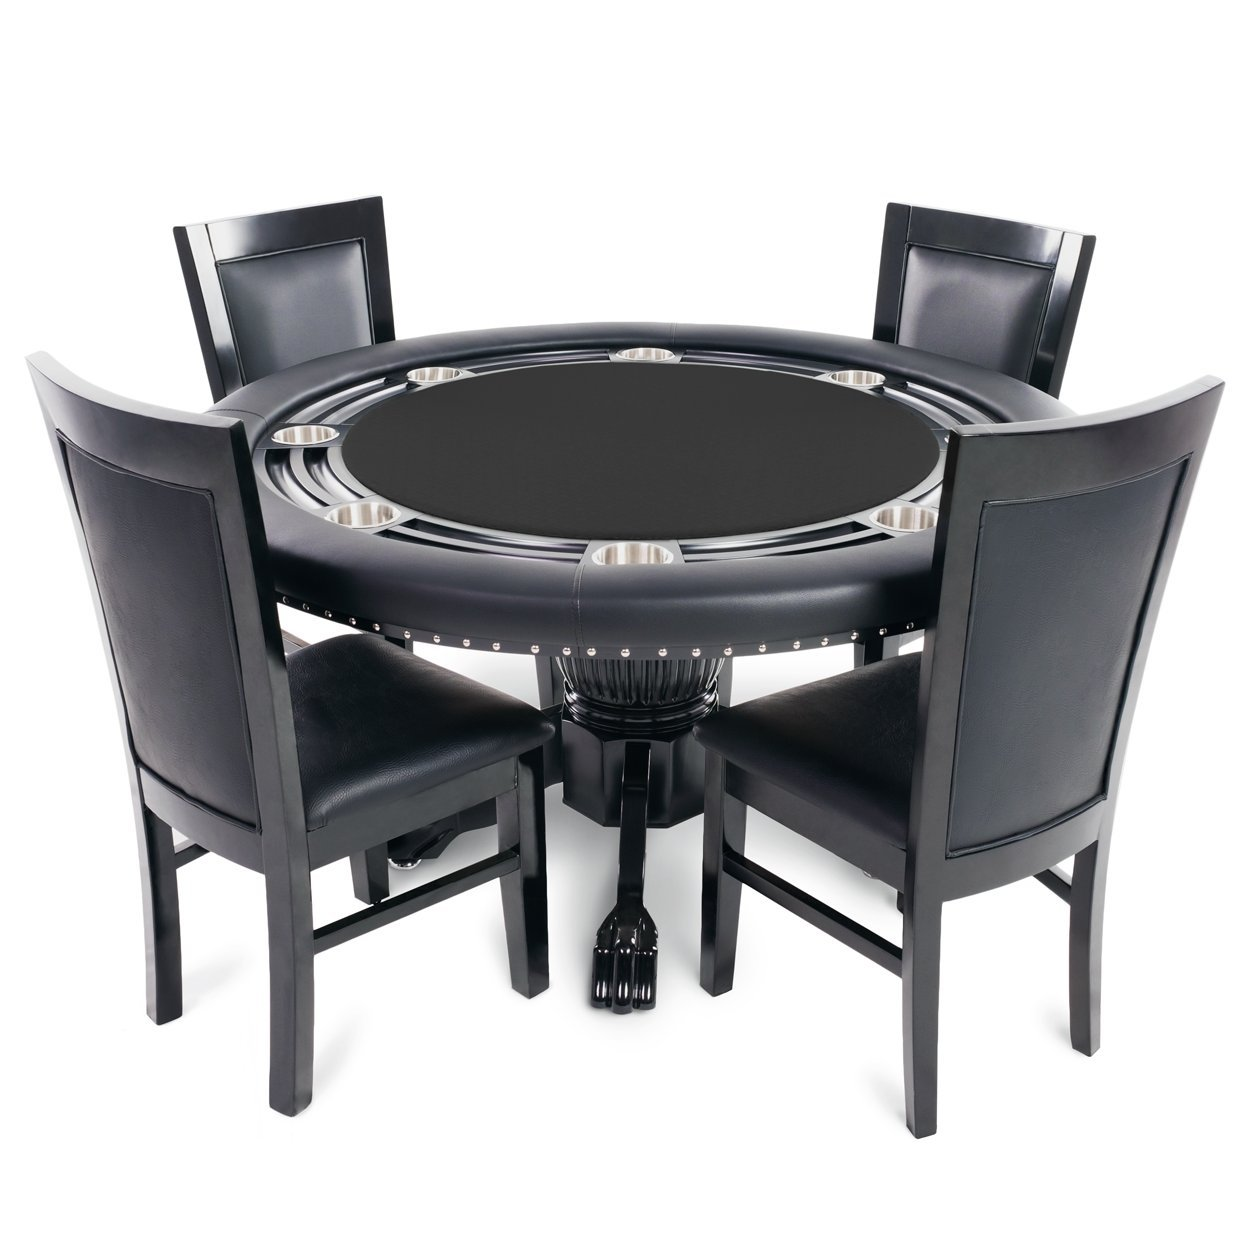 BBO Poker Nighthawk Poker Table for 8 Players with Black Speed Cloth Playing Surface, 55-Inch Round, Includes 4 Dining Chairs by BBO Poker